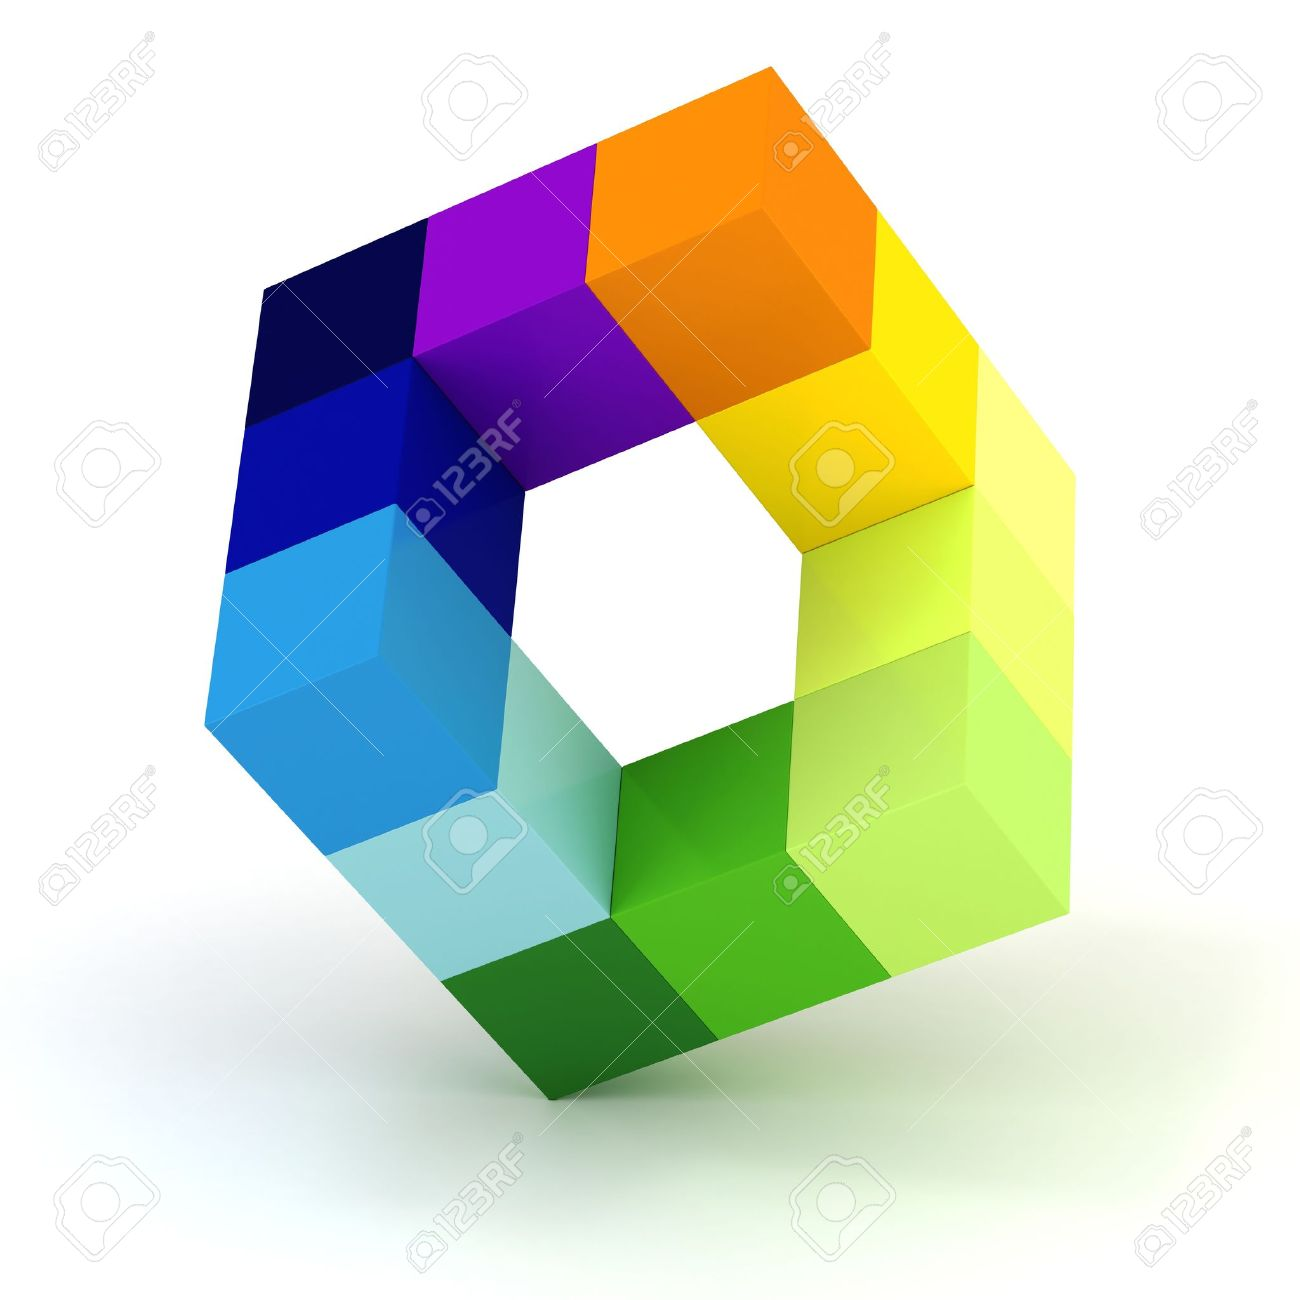 3d abstract cube design on white background  sc 1 st  123RF Stock Photos & 3d Abstract Cube Design On White Background Stock Photo Picture ... Aboutintivar.Com